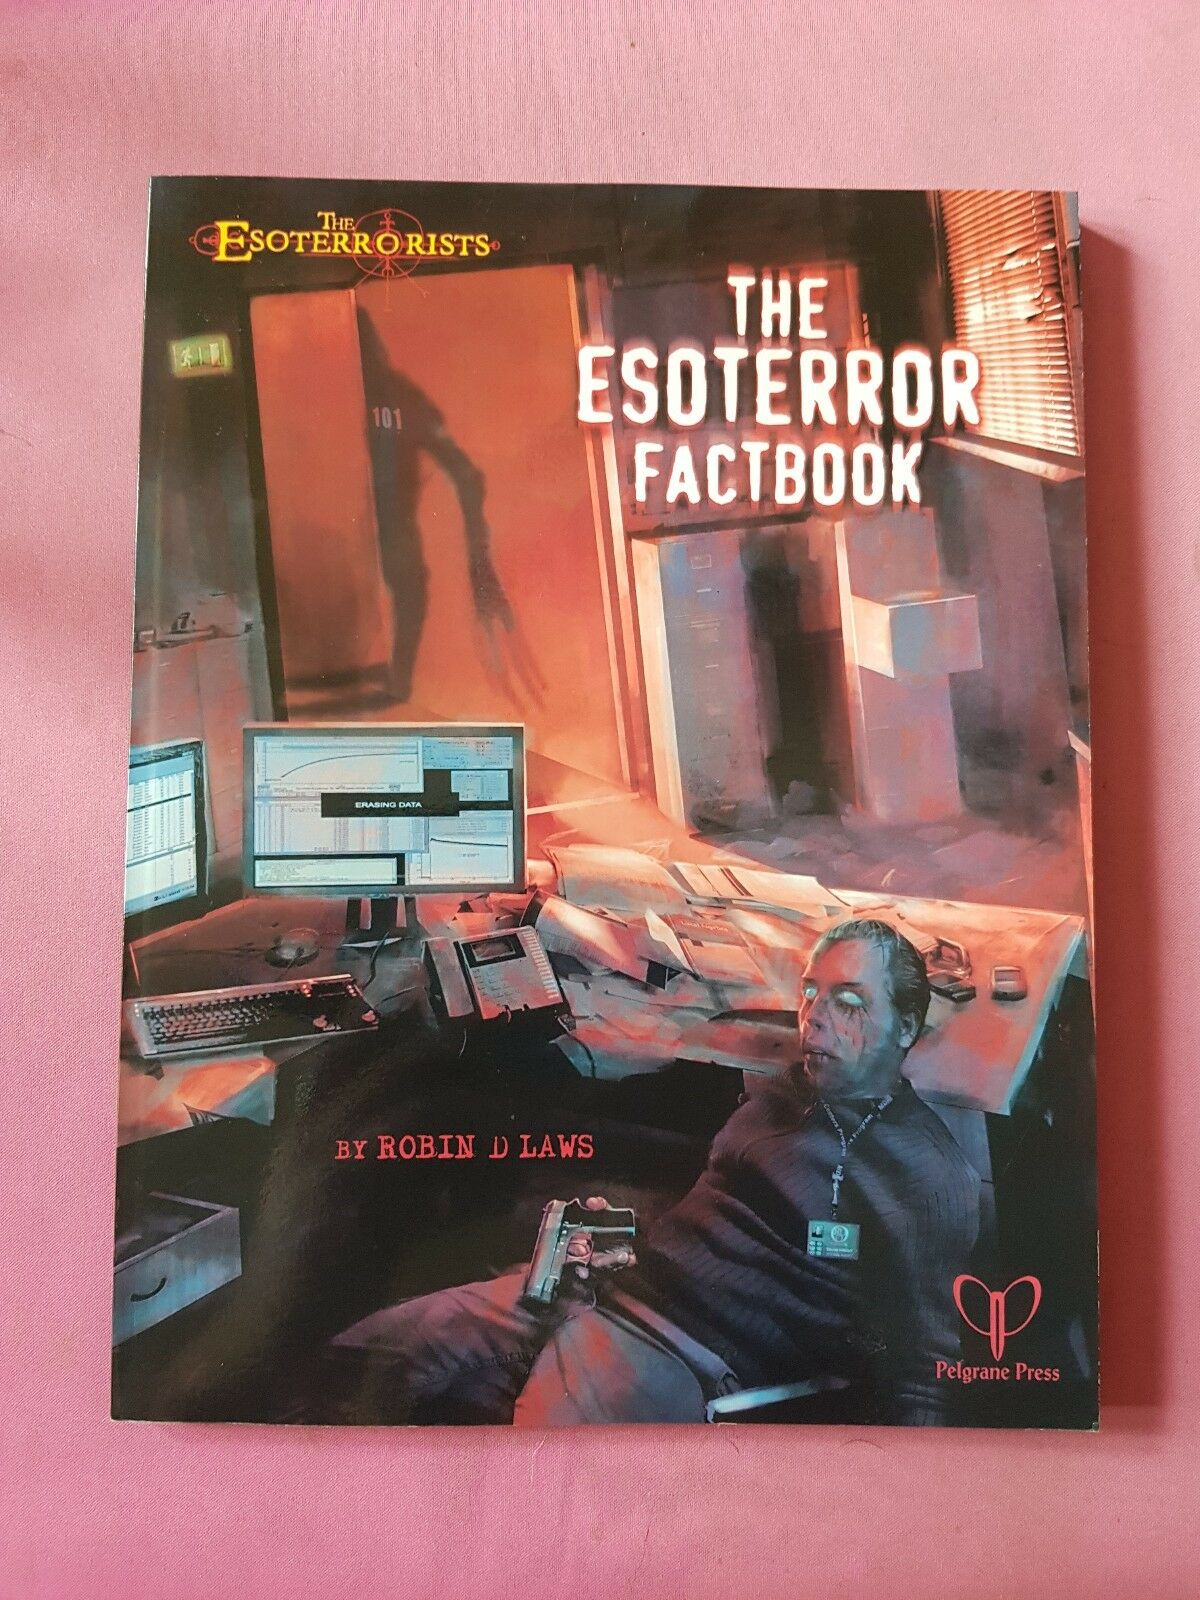 THE ESOTERROR FACTBOOK - ESOTERRORISTS GUMSHOE RPG ROLEPLAYING ROLEPLAY